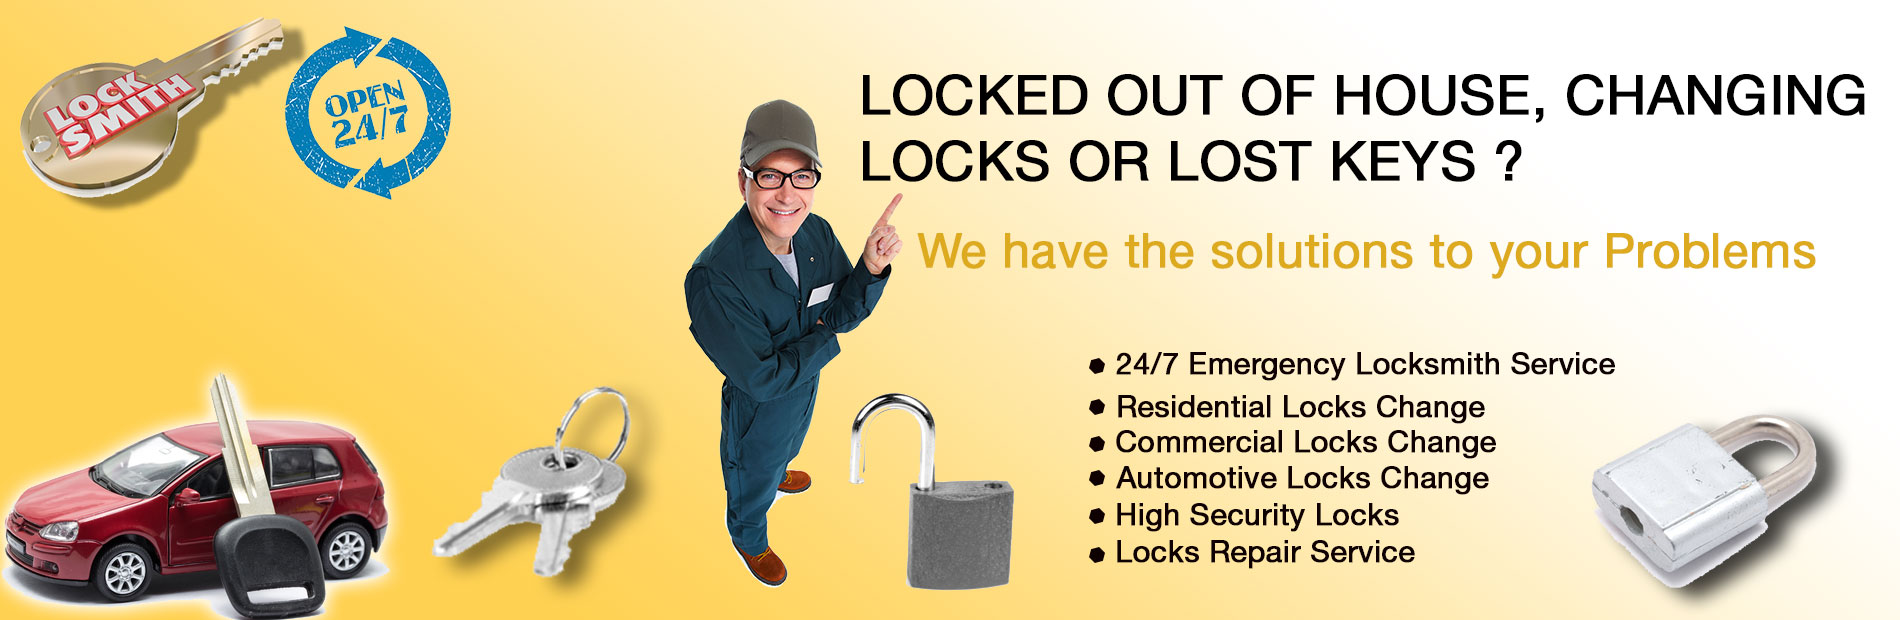 New York Lock And Safe New York, NY 212-918-5493